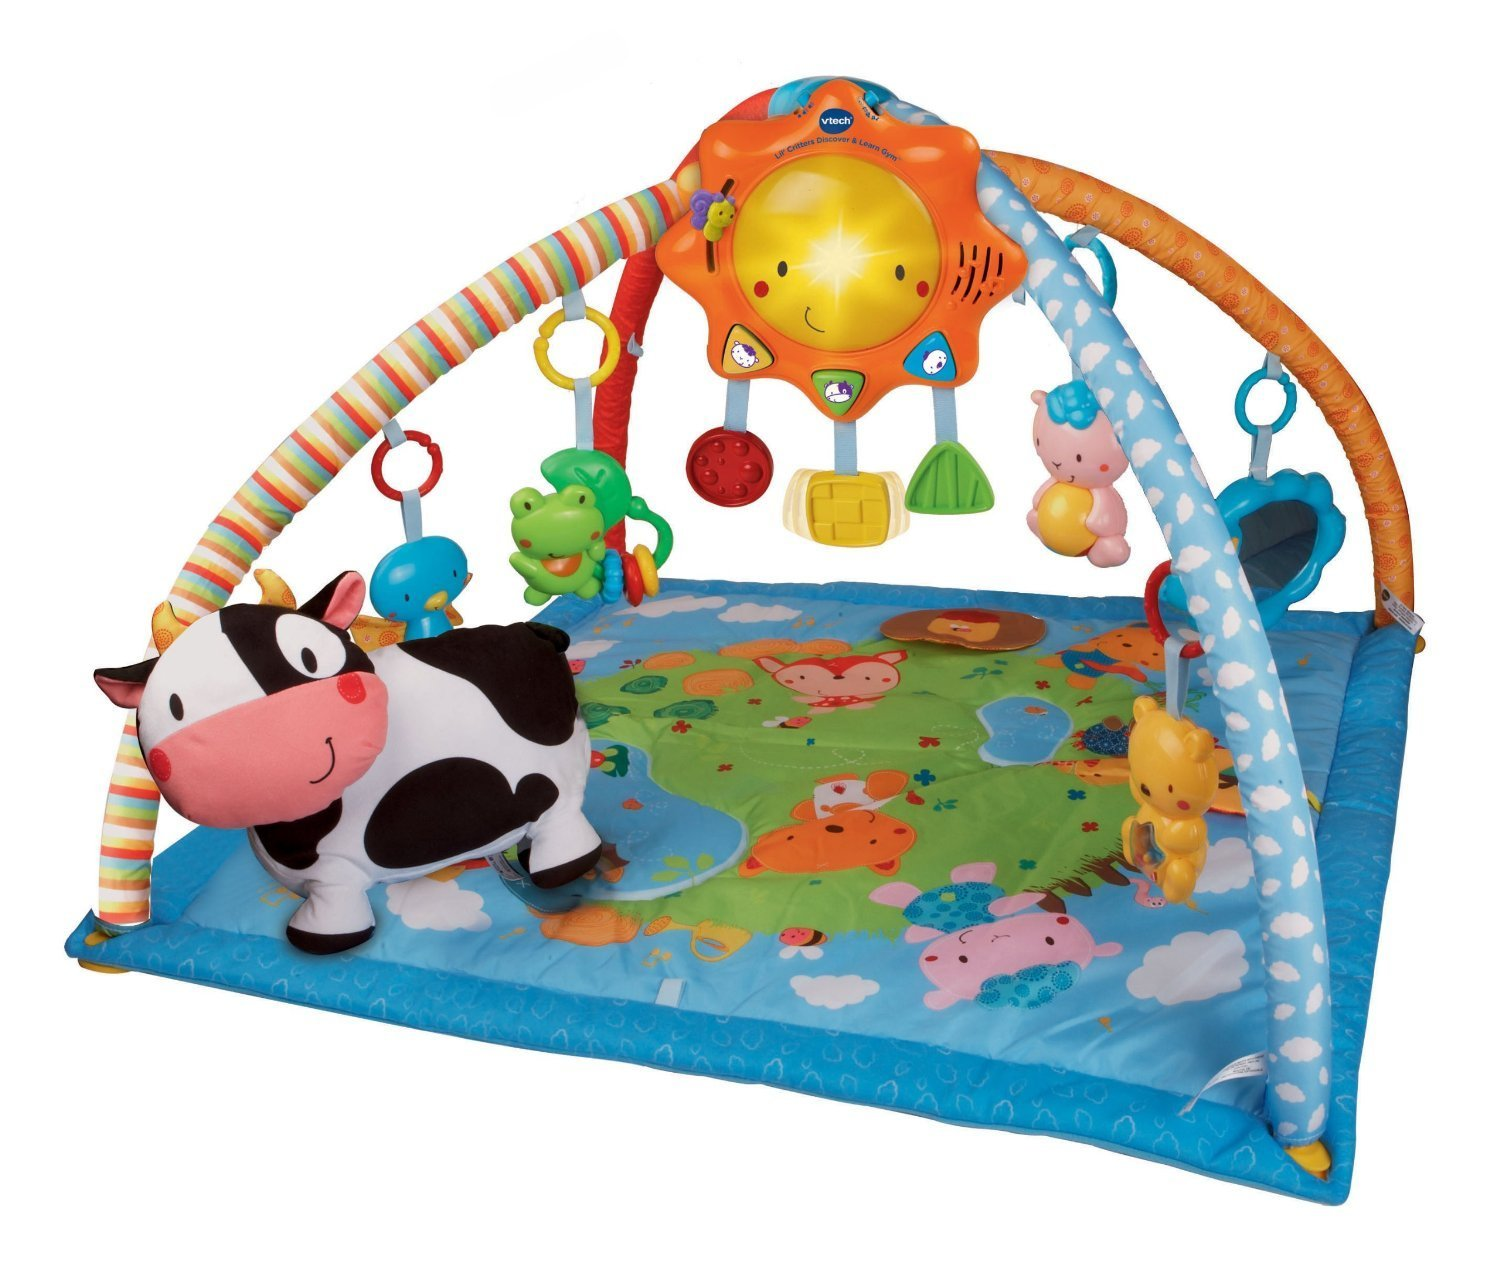 VTech Baby Line Lil' Critters Discover and Learn Gym